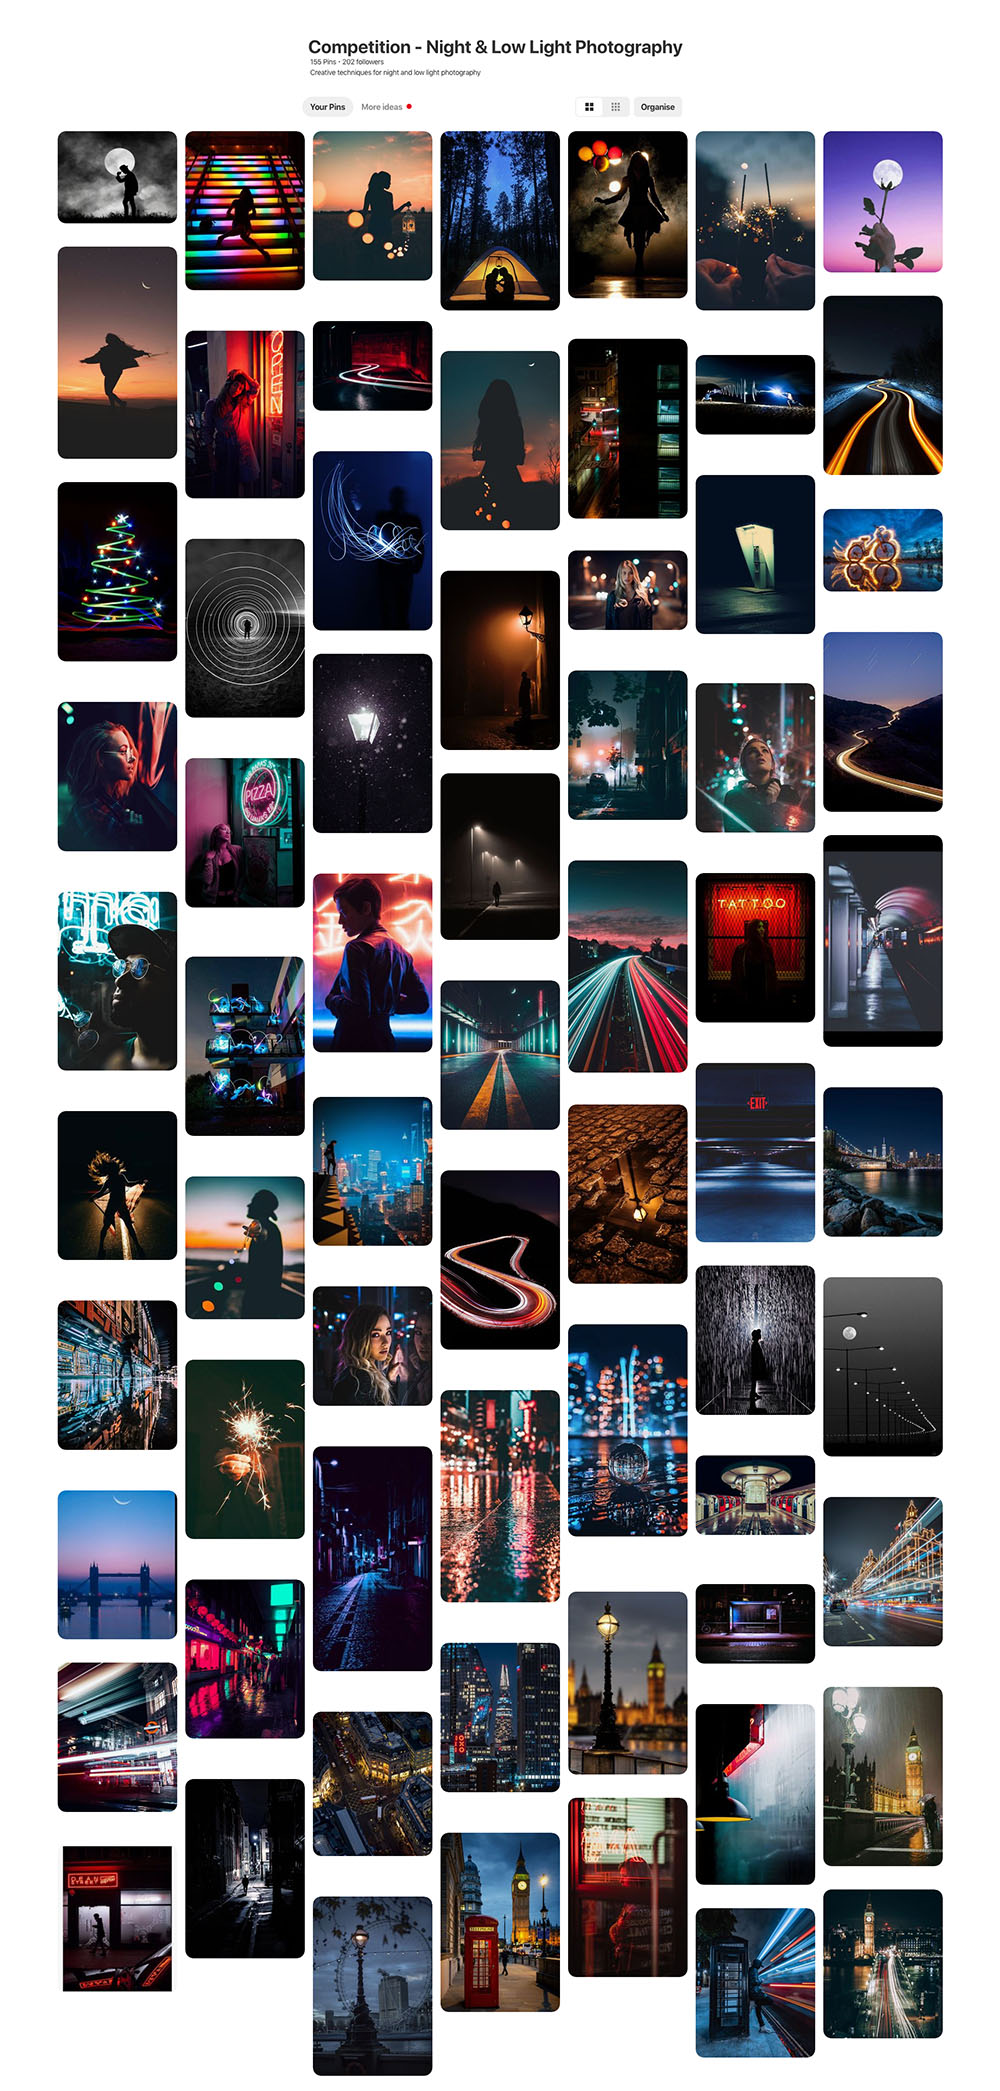 night low light photography competition